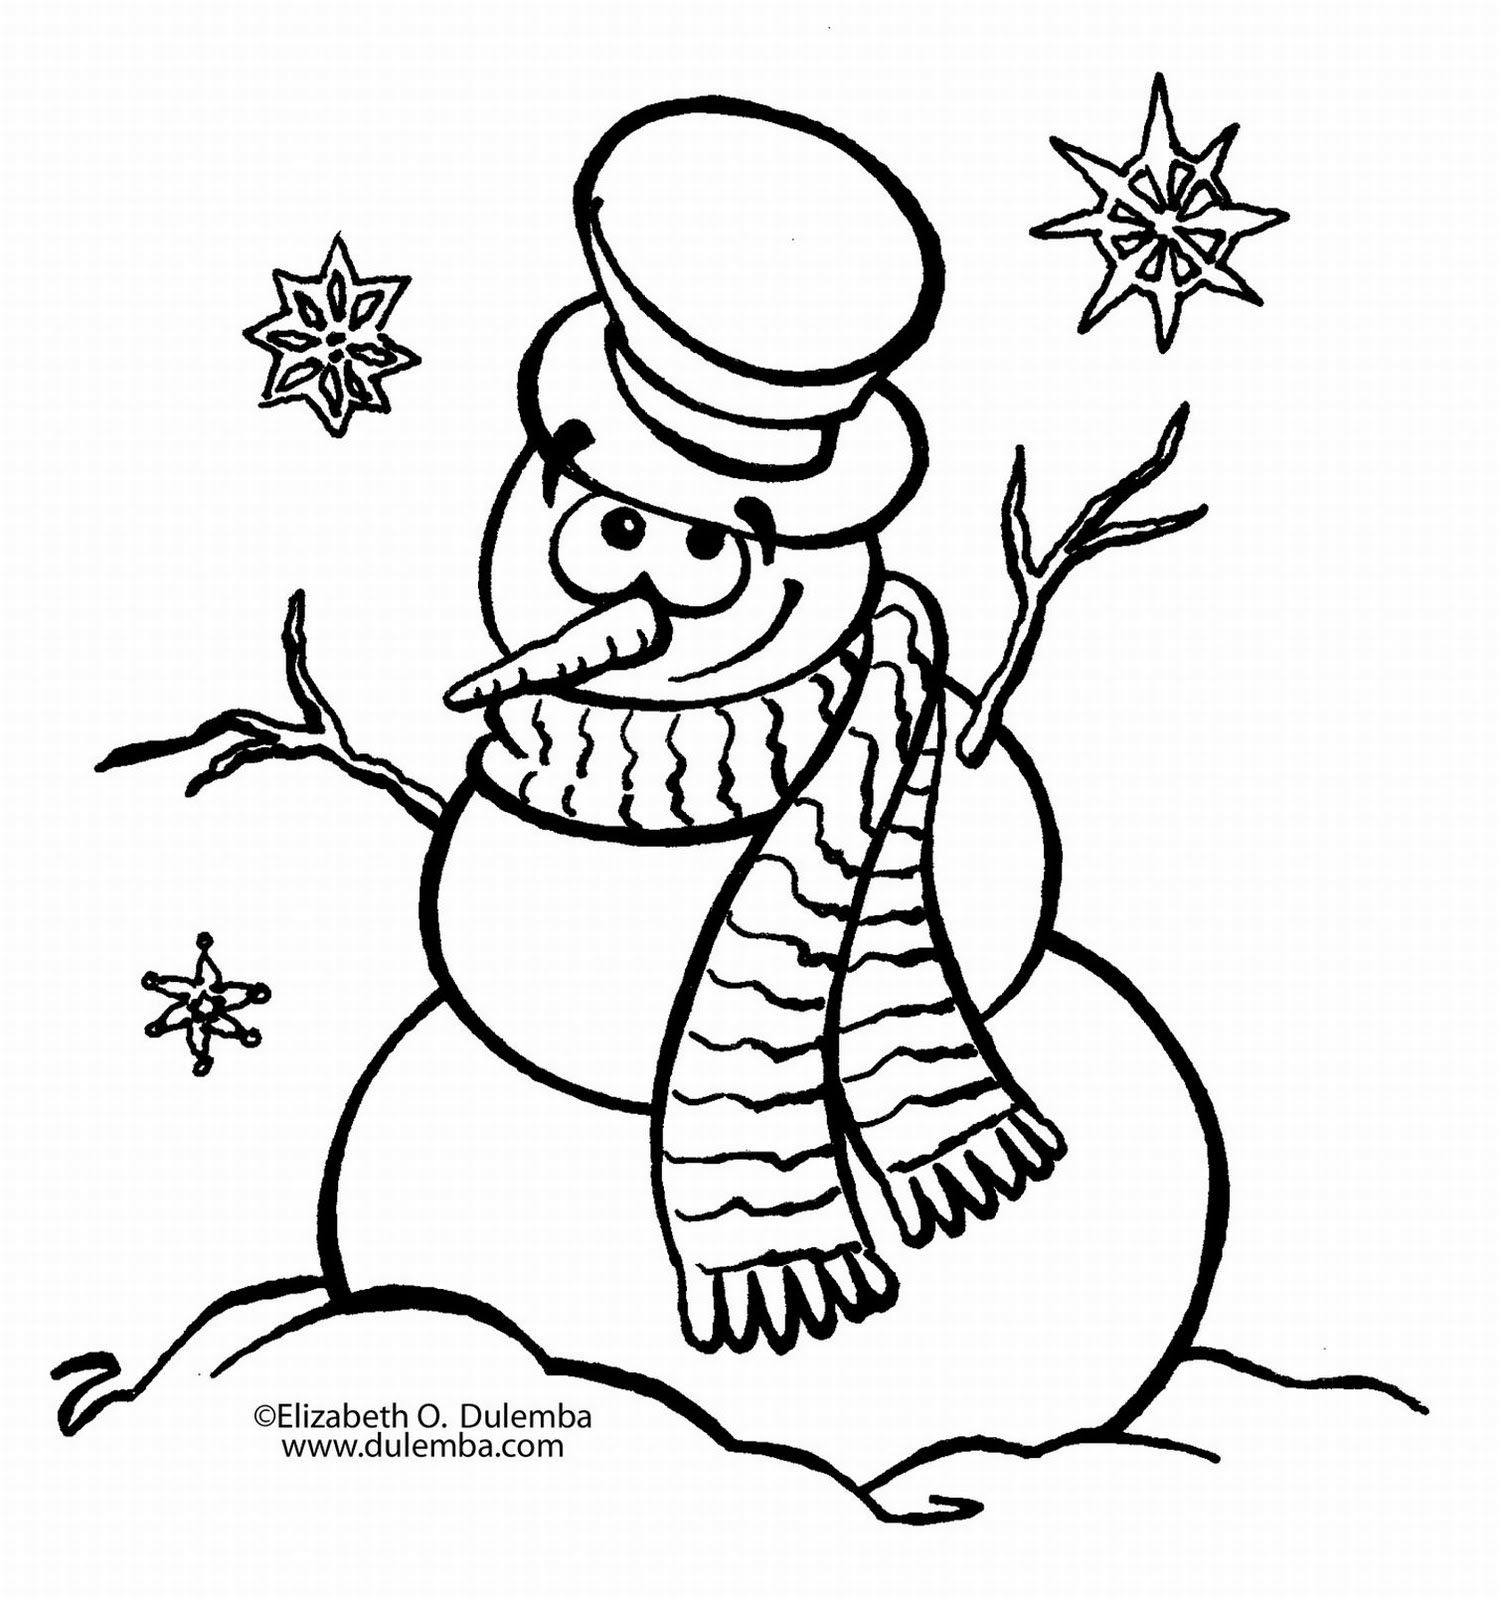 Blank Coloring Pages To Print Coloring Pages Pinterest